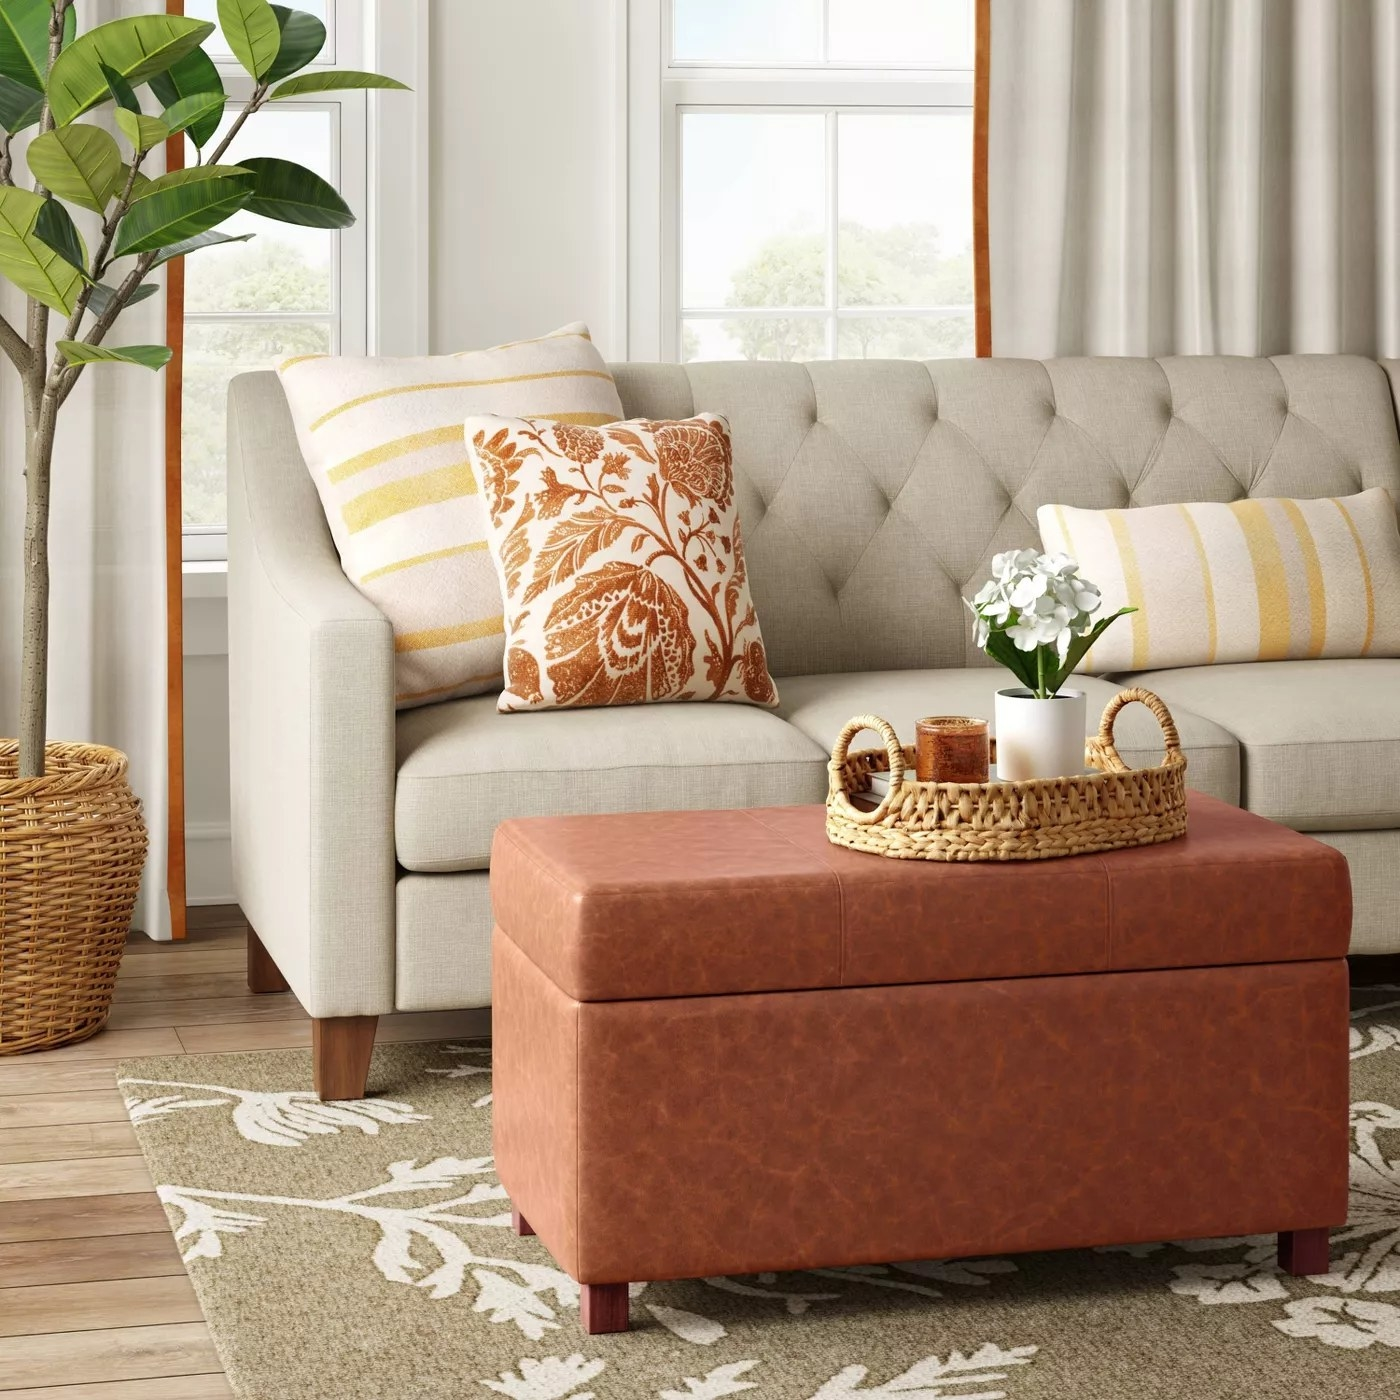 The storage ottoman functioning as a coffee table in a living room